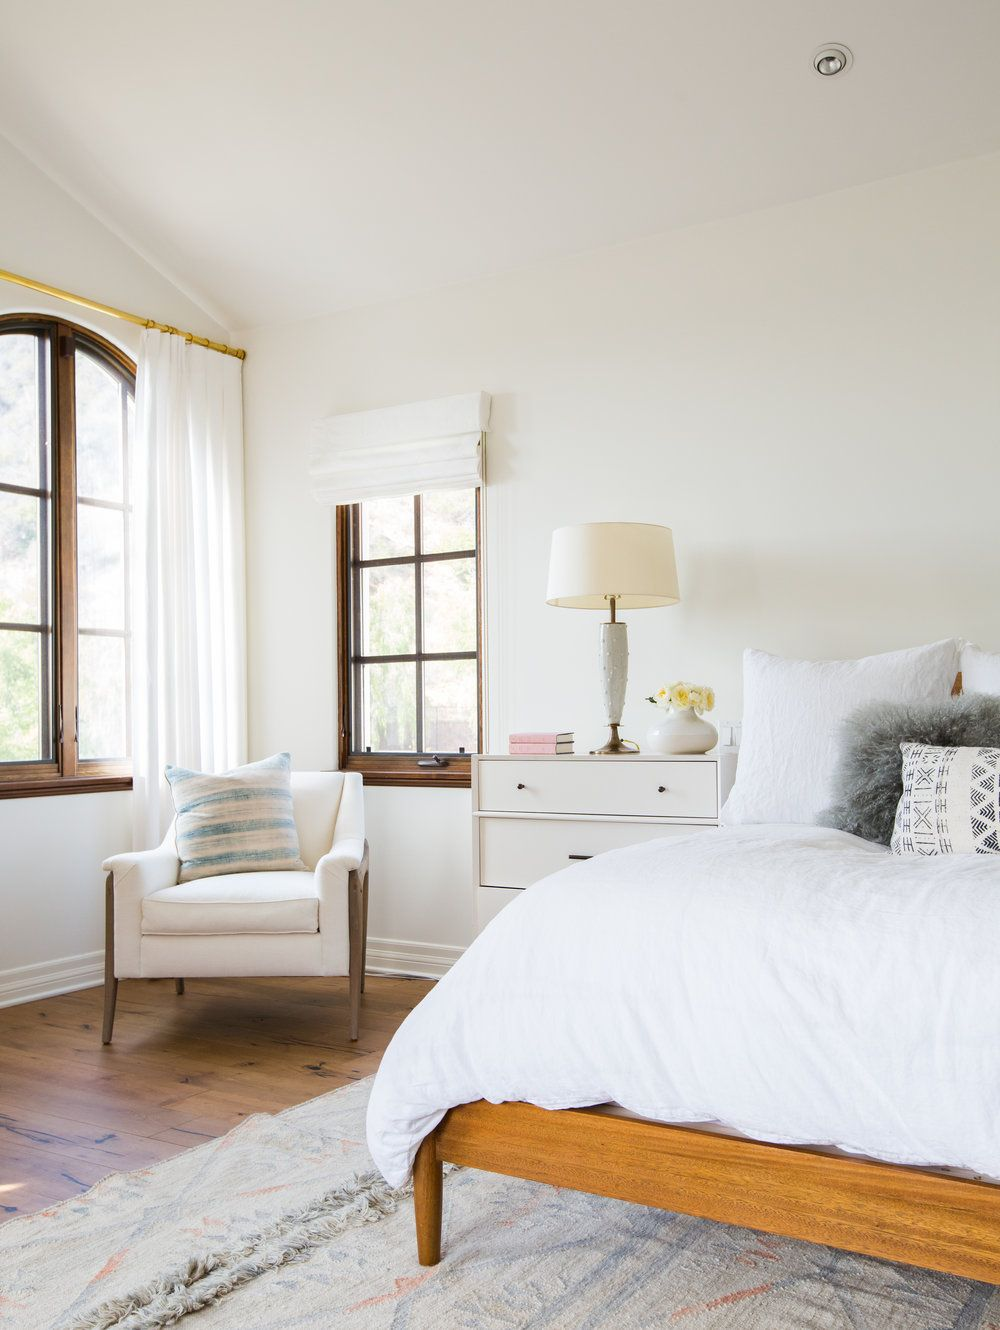 Lauren conrad   pacific palisades home is even more beautiful than you think it also best base images in diy ideas for bed room rh pinterest